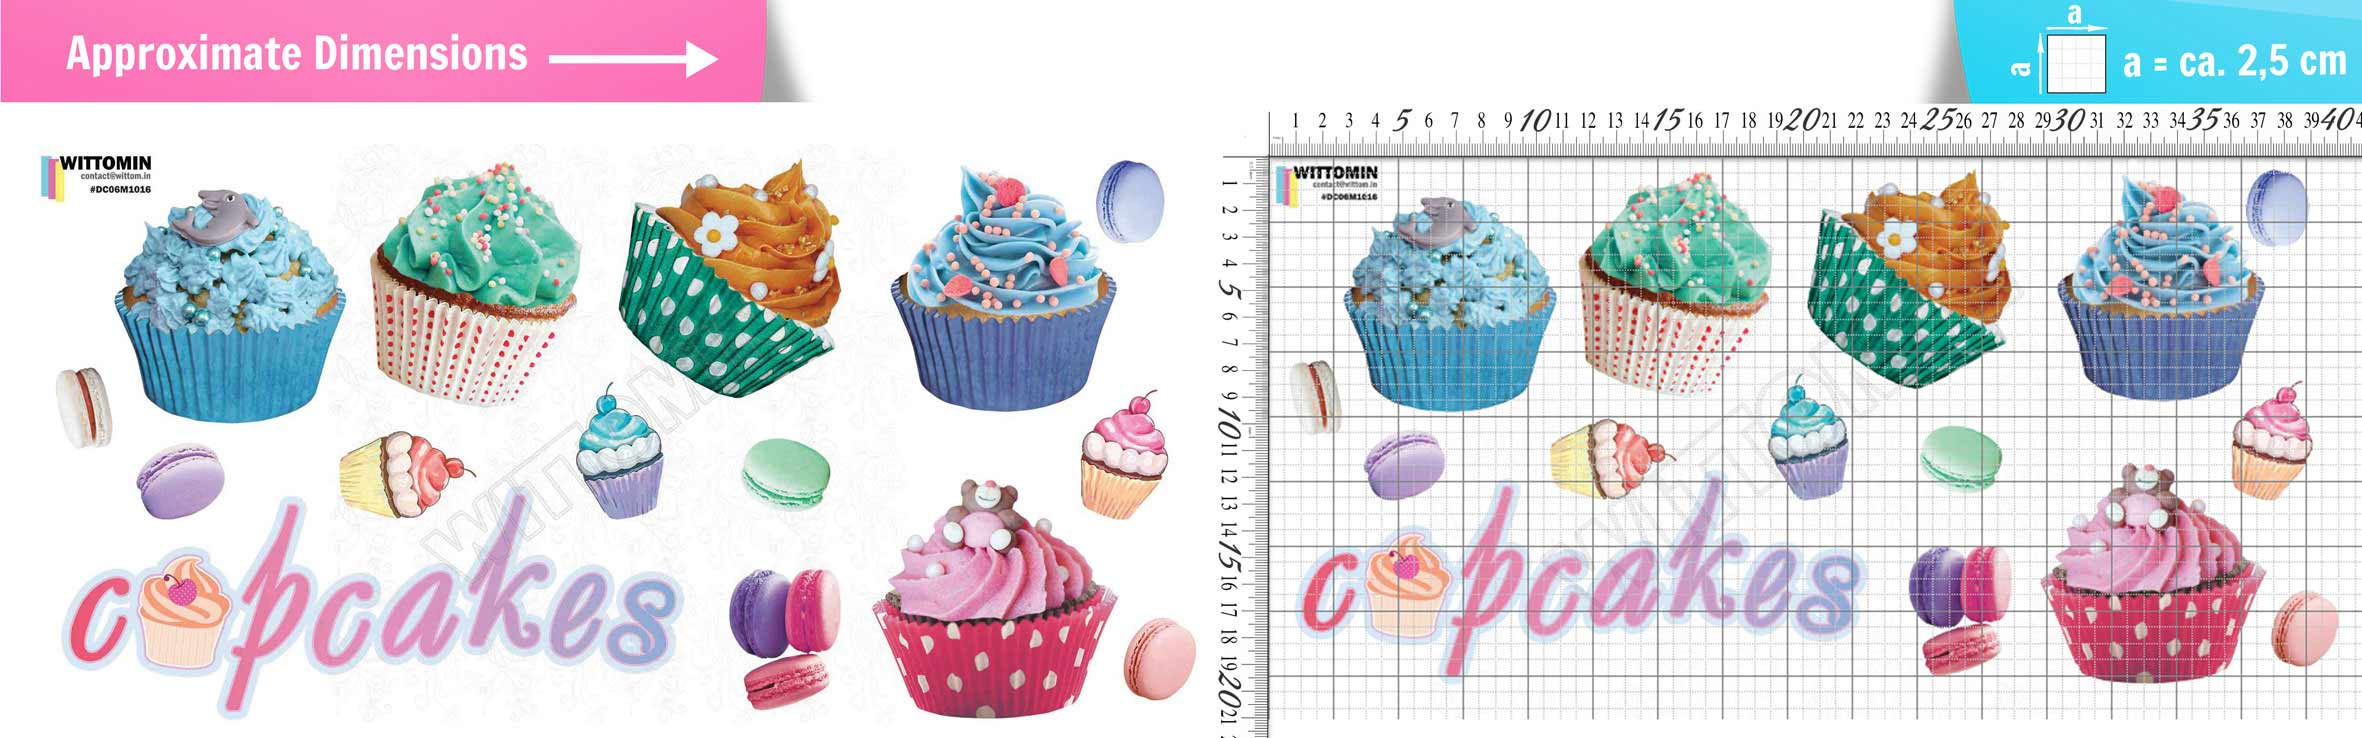 Cupcakes and Macaroons sticker set from Wittomin